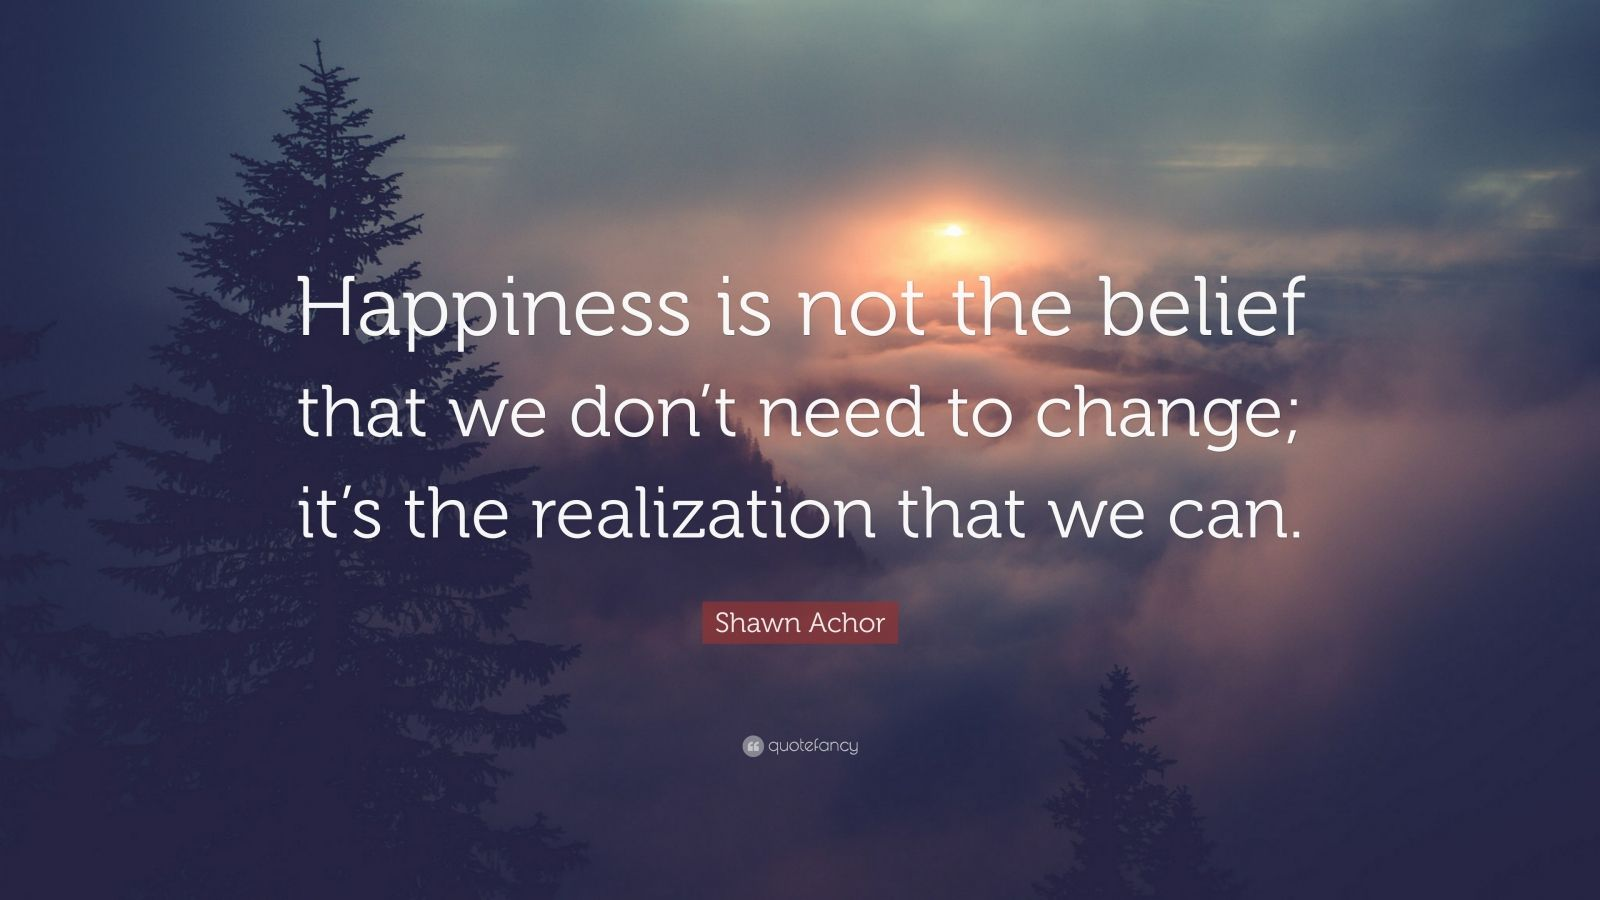 """Shawn Achor Quote: """"Happiness is not the belief that we don't need to change; it's the realization that we can."""""""